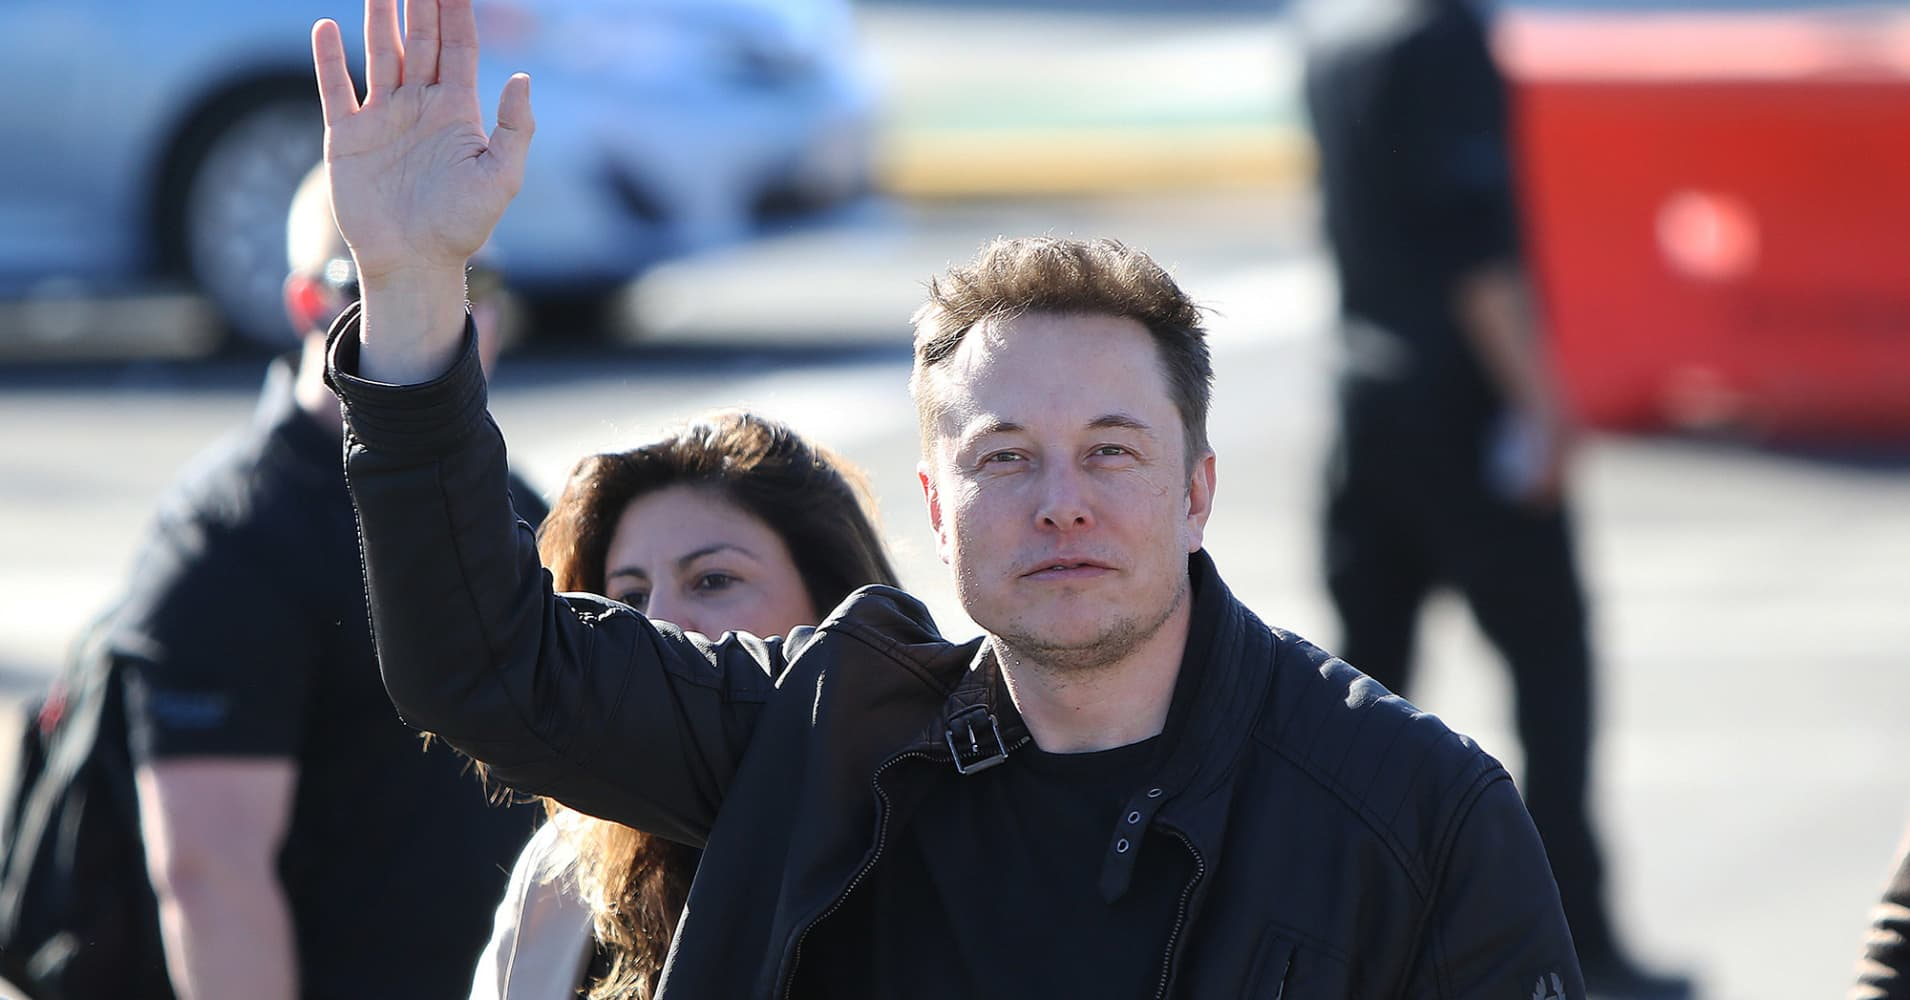 Elon Musk is leaving presidential councils over withdrawal from Paris accord